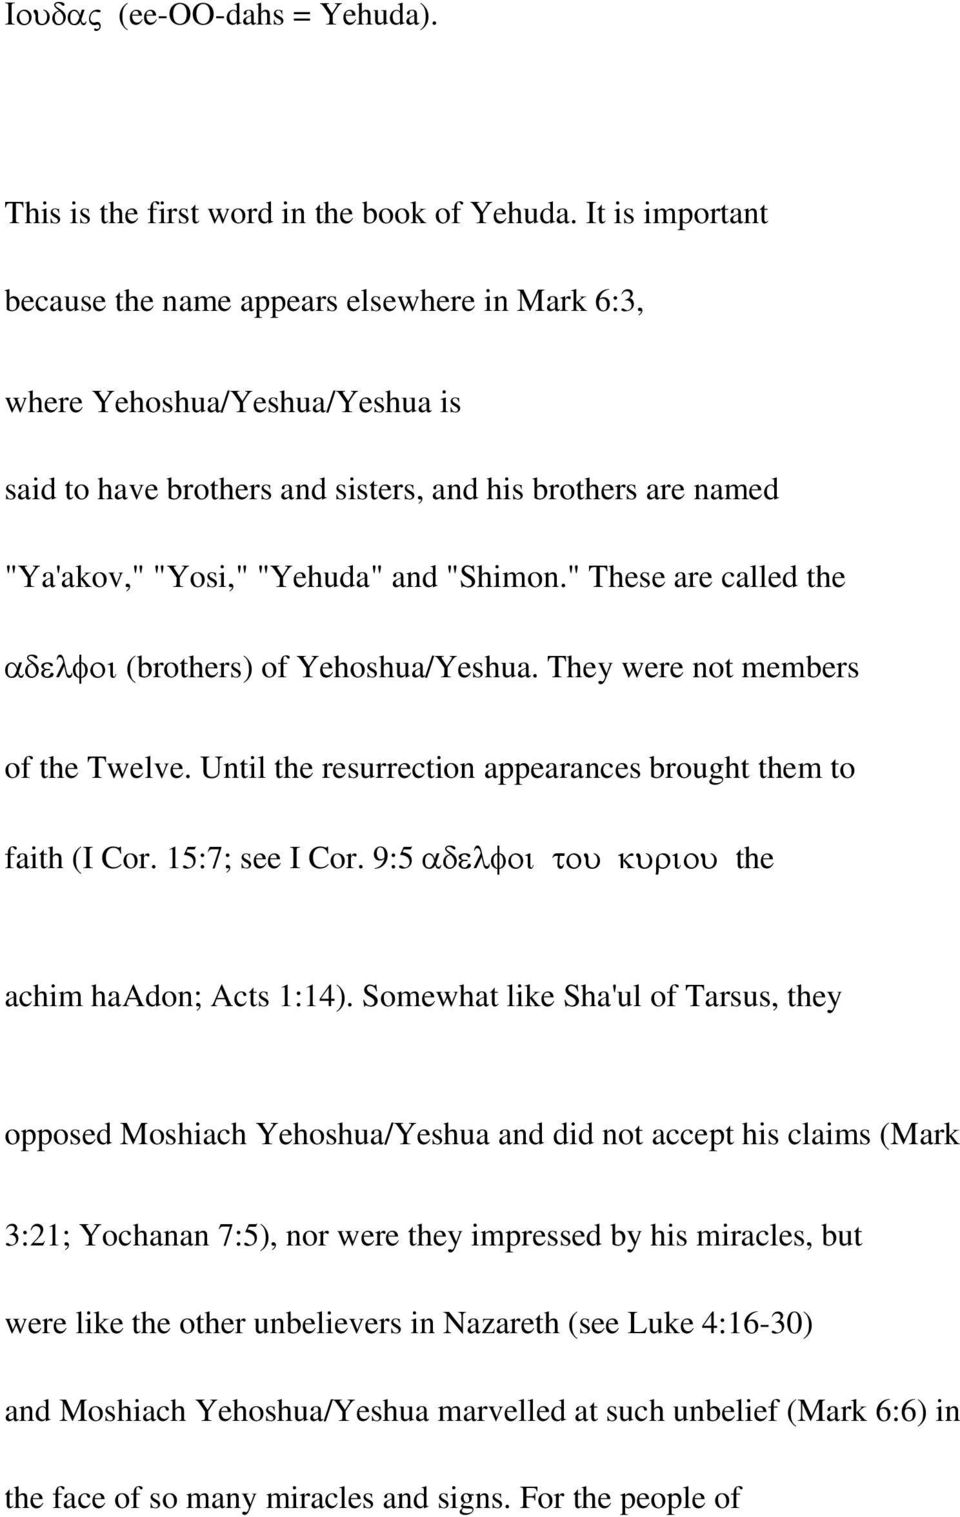 """ These are called the αδελφοι (brothers) of Yehoshua/Yeshua. They were not members of the Twelve. Until the resurrection appearances brought them to faith (I Cor. 15:7; see I Cor."